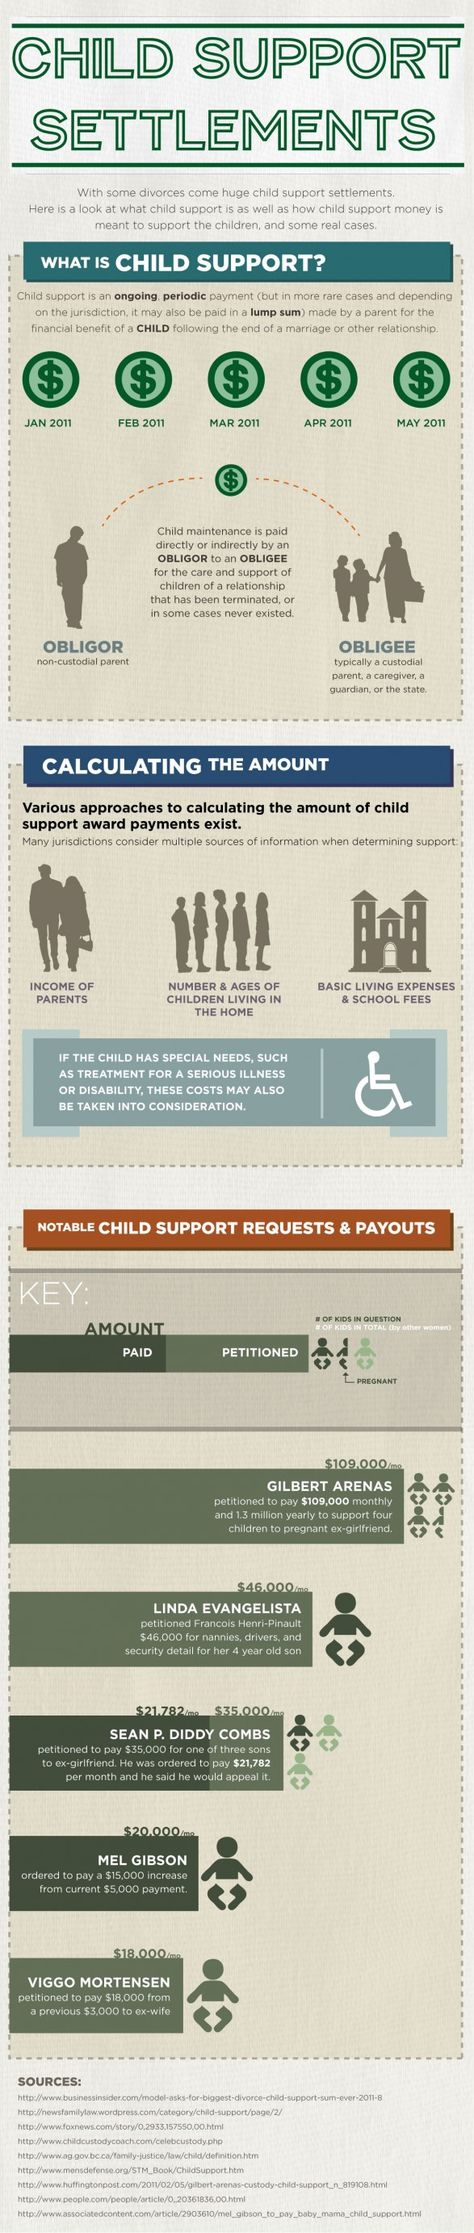 worksheet Child Support Worksheet Washington best 25 child support attorney ideas on pinterest lawyers custody laws and lawyers